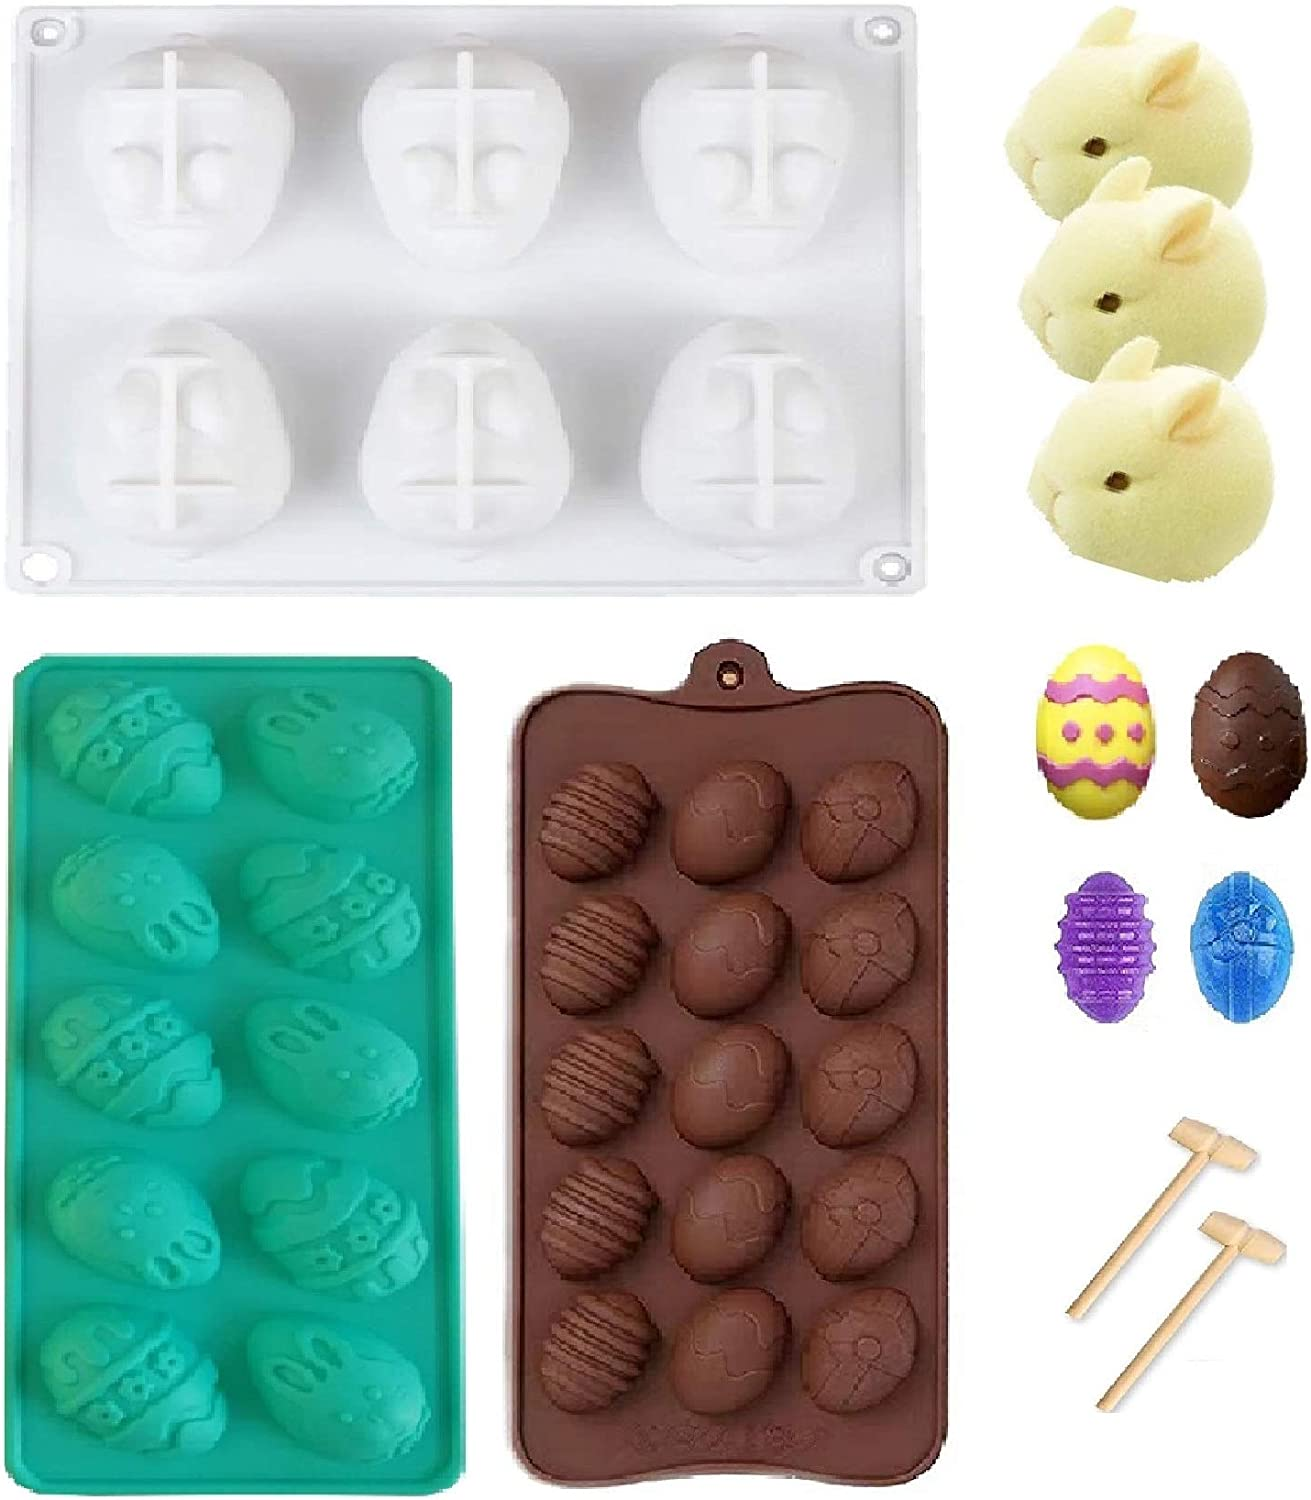 Easter Egg Shaped Cake Mold Silicone and Easter Bunny Shaped Molds Set 6 Cavities Rabbit Cake Molds Trays Cooking Supplies for Chocolate, Candies, Ice Cube Trays 3D Baking Molds with Wooden Hammers